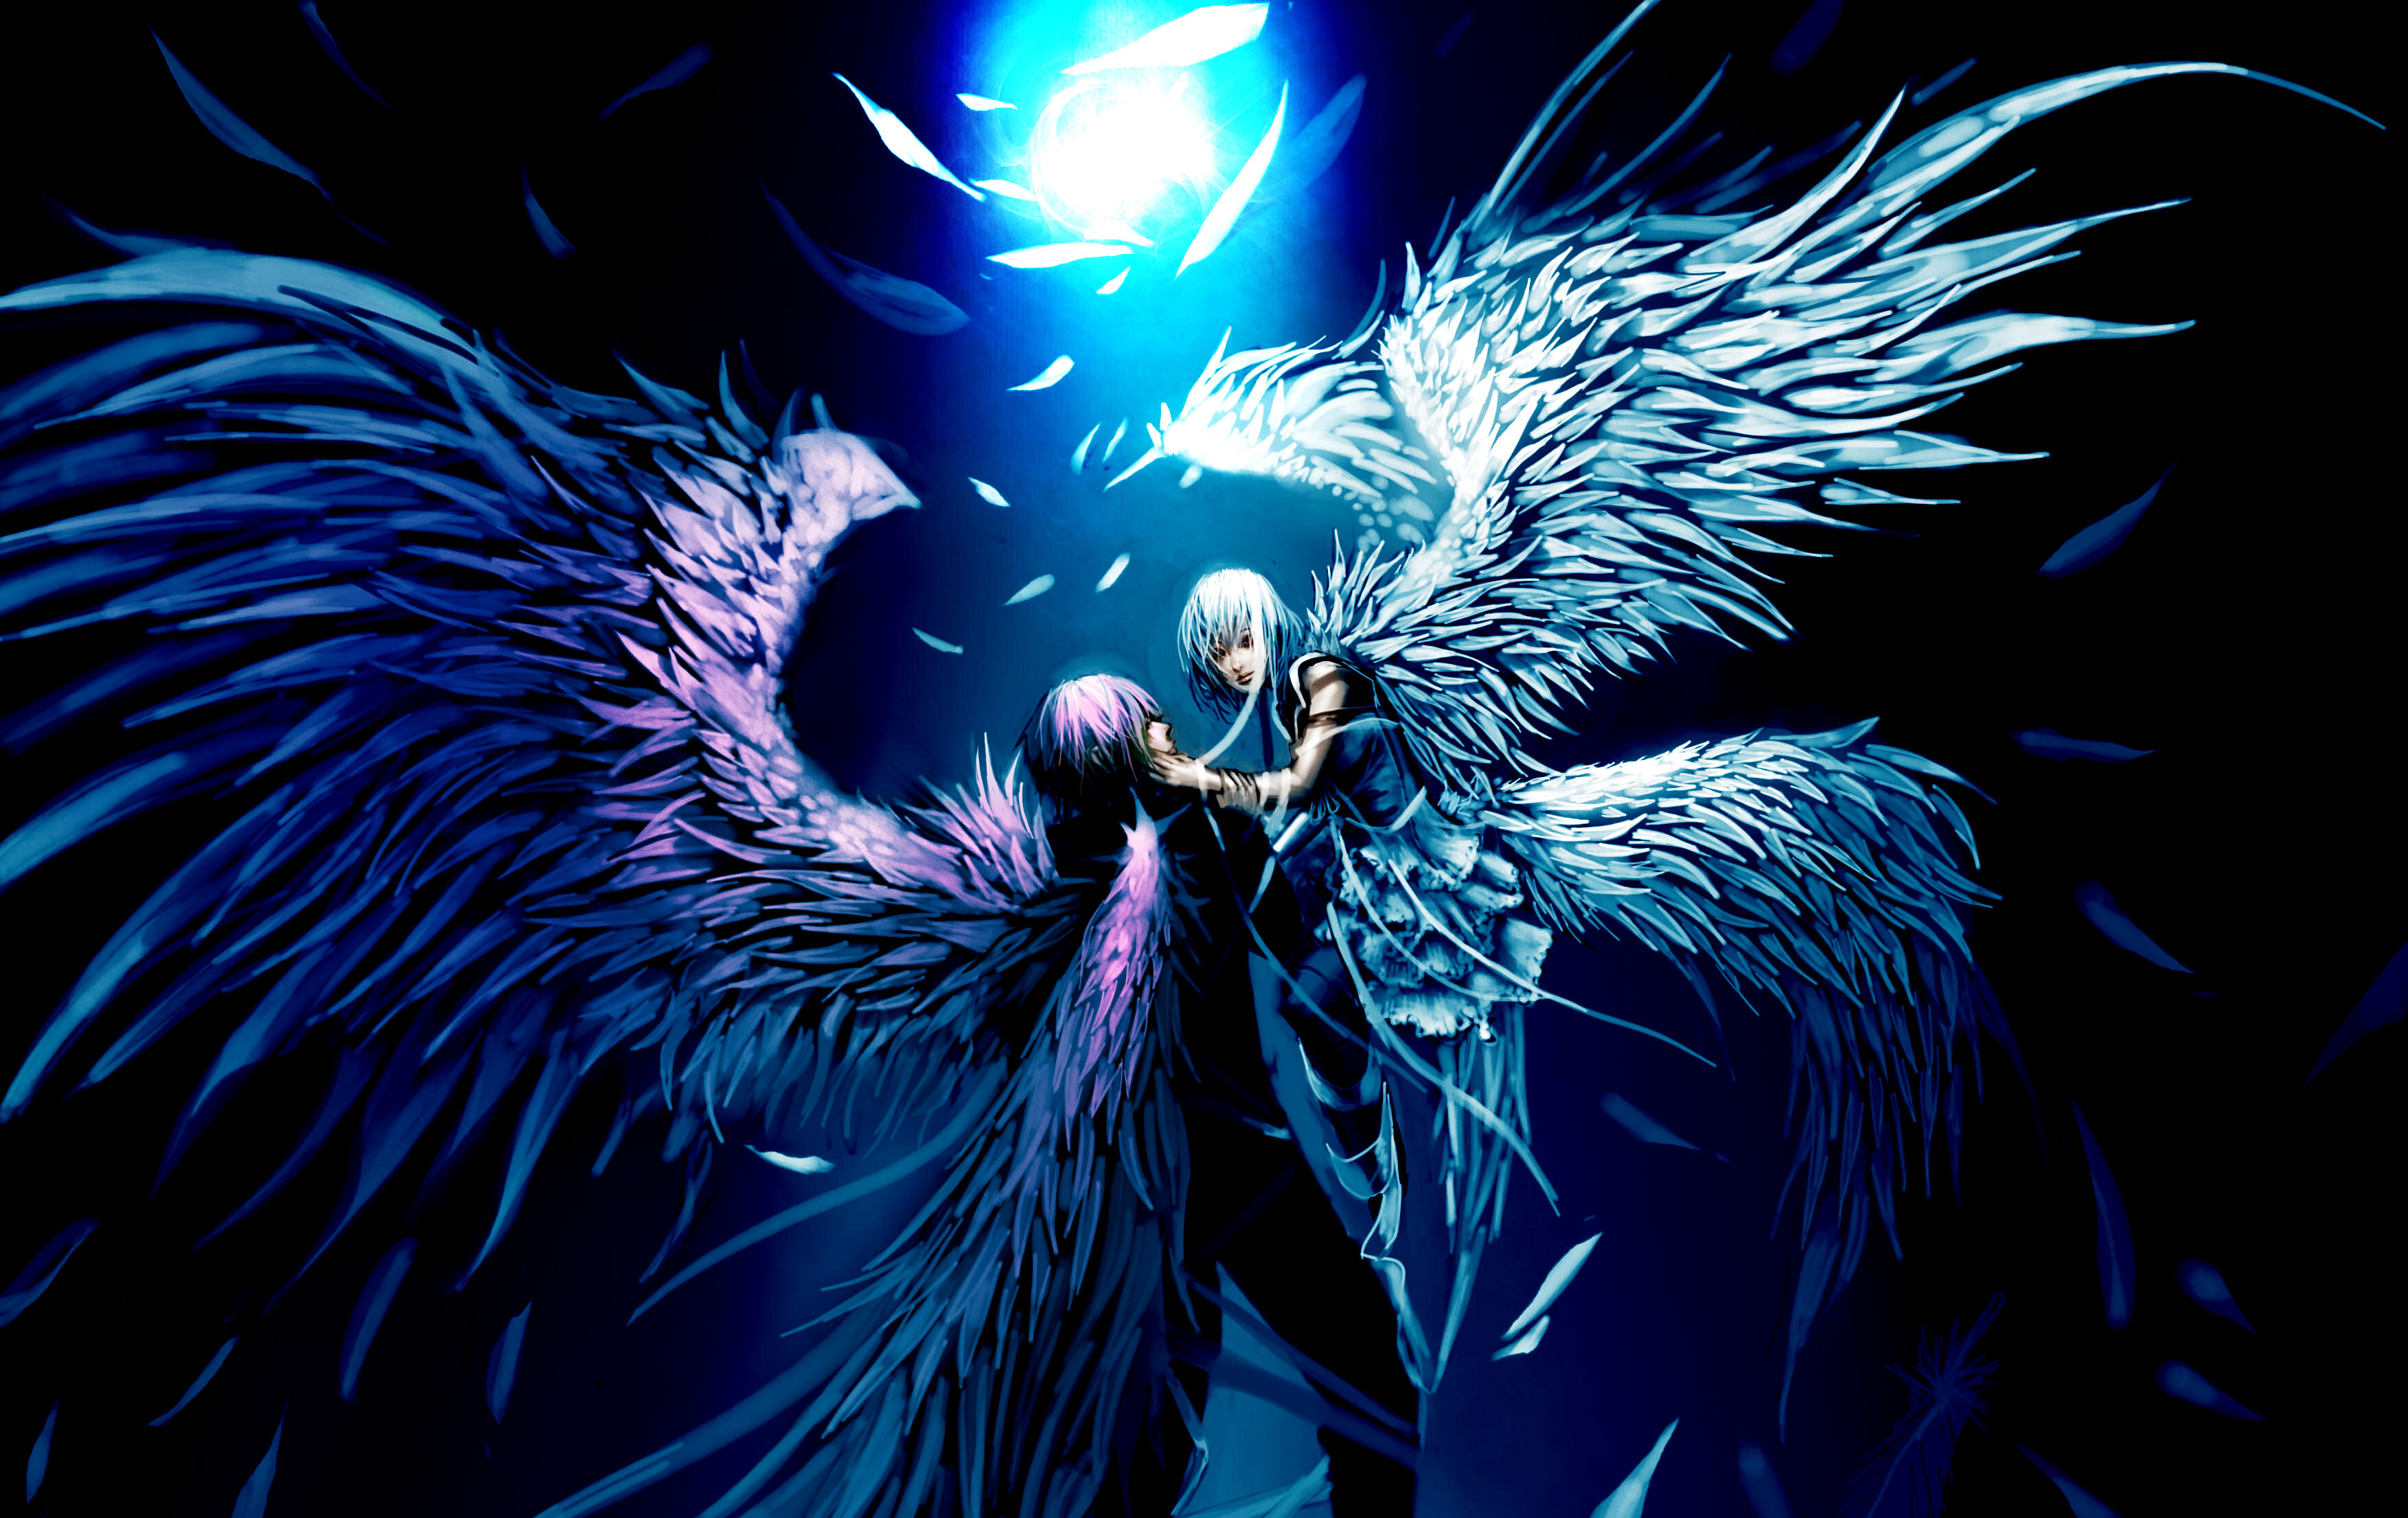 New Angels Full High Quality In HD Wallpaper Picture Image ...